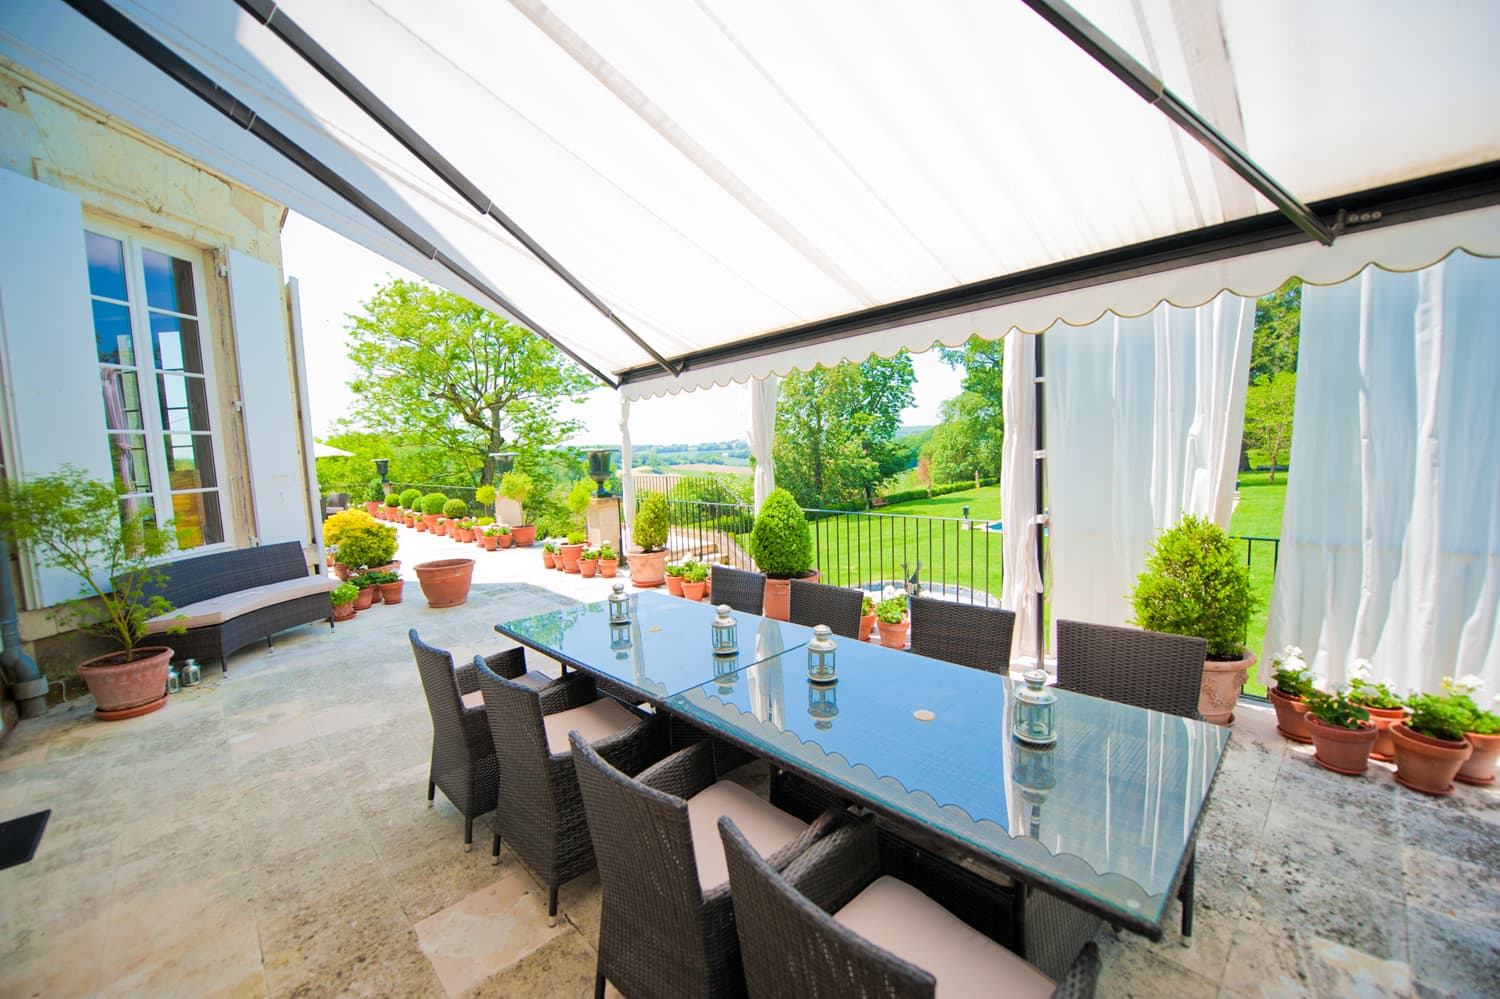 Shaded dining terrace